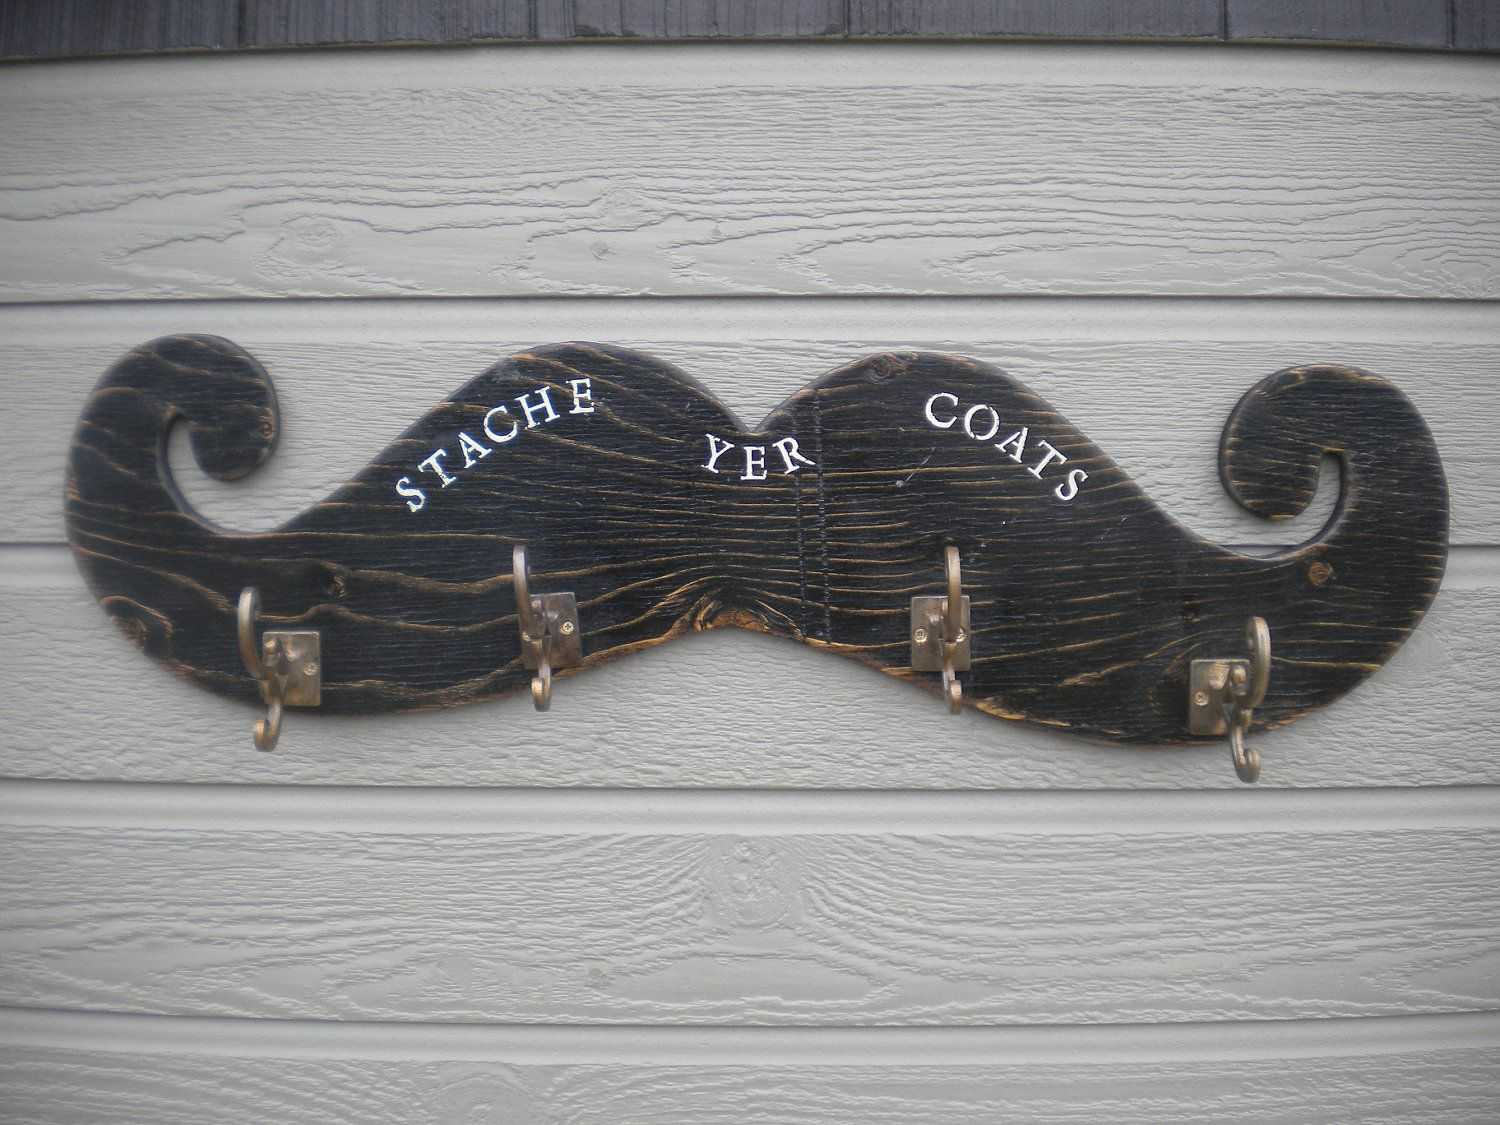 Lrg Mustache Coat Rack Fun Home Decor By Theblackscottie1 On Etsy